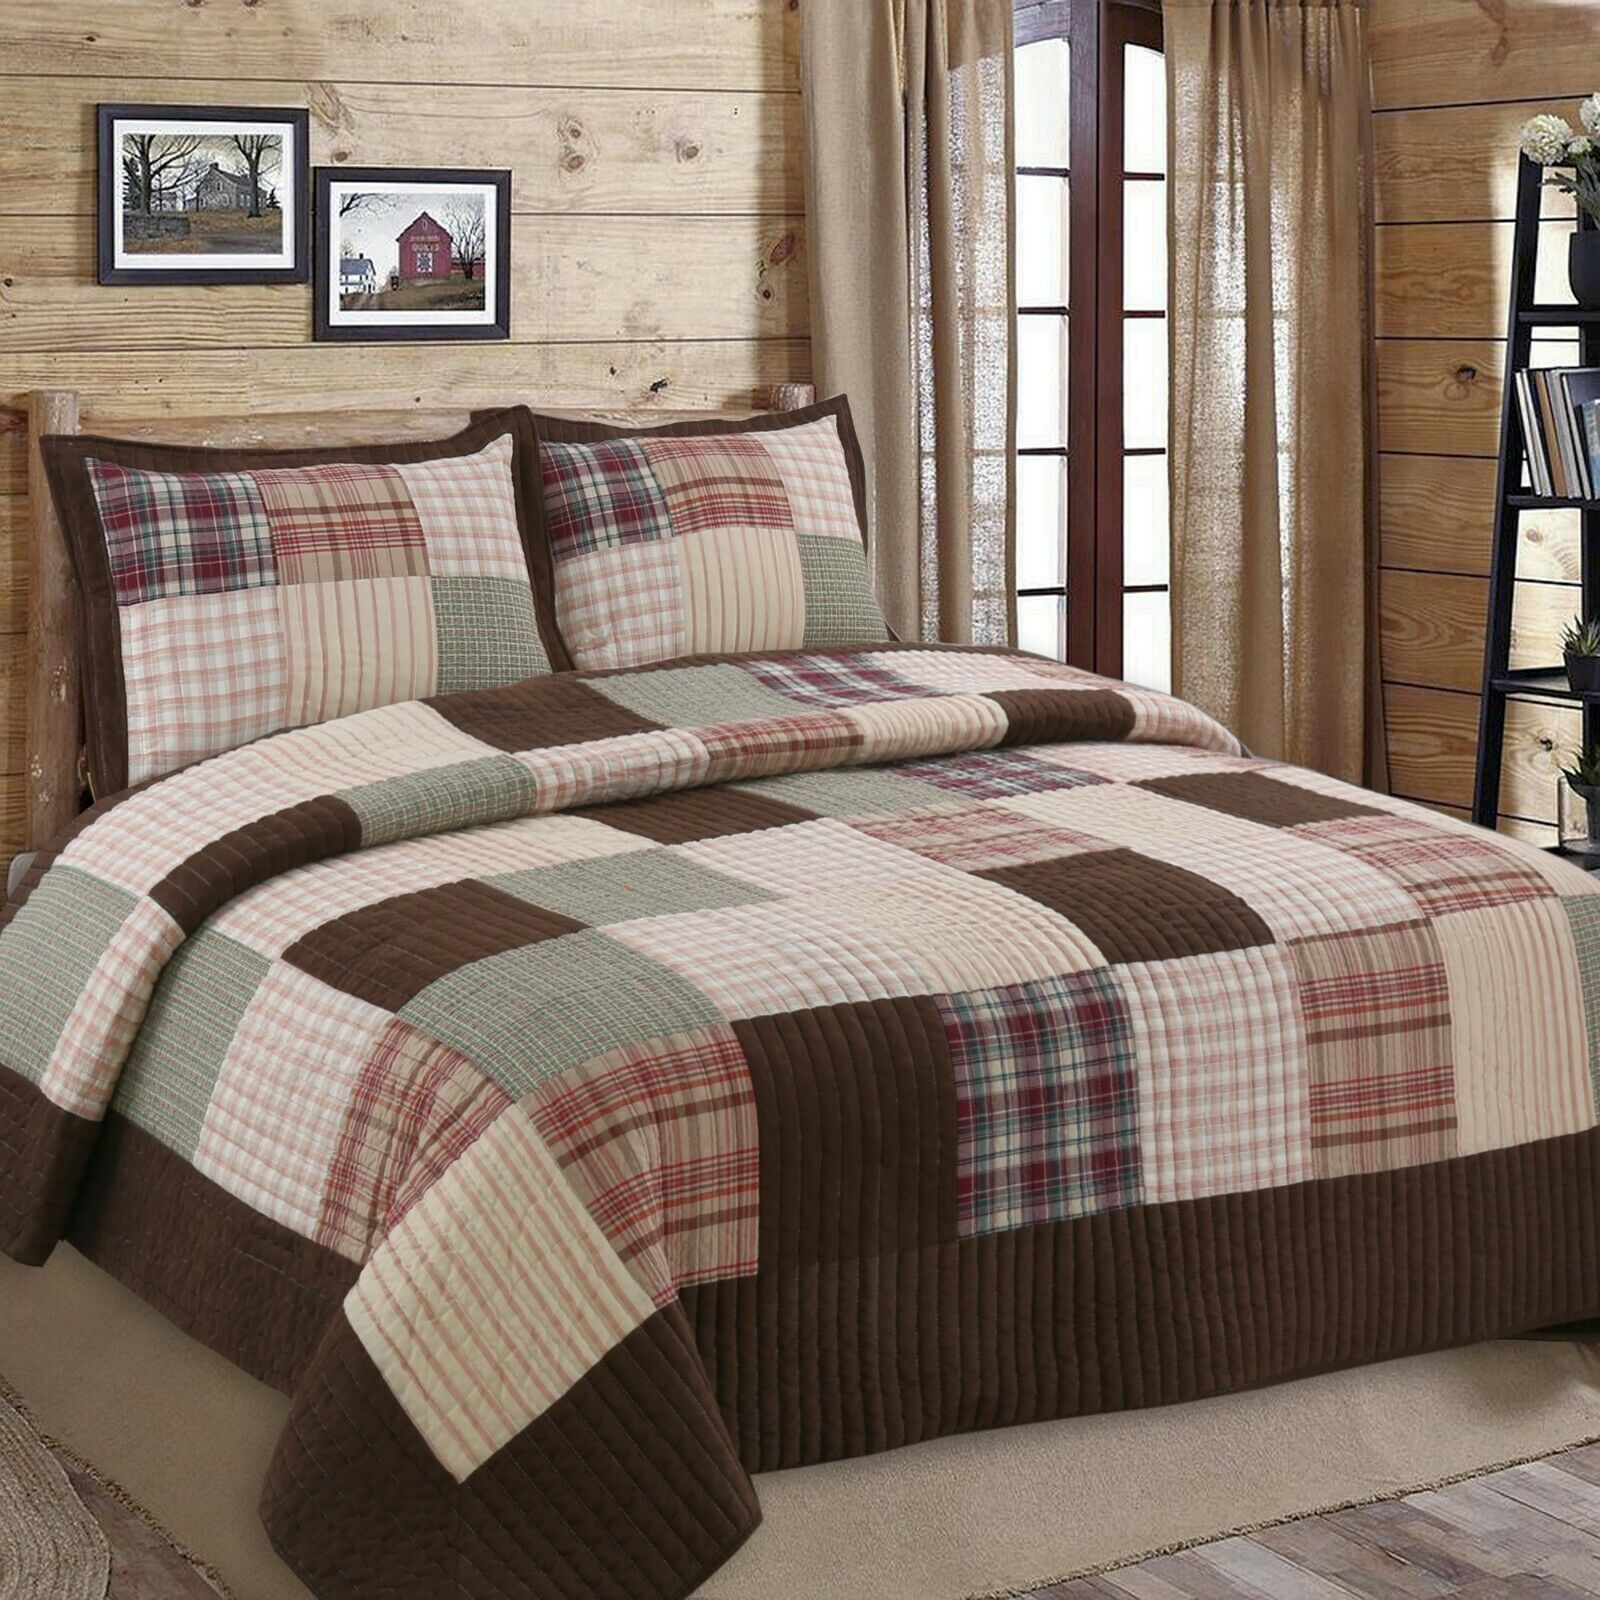 Abreeze 2pc 100/% Cotton Train Plaid Quilt Comforter Childrens Bedspread Set Twin size